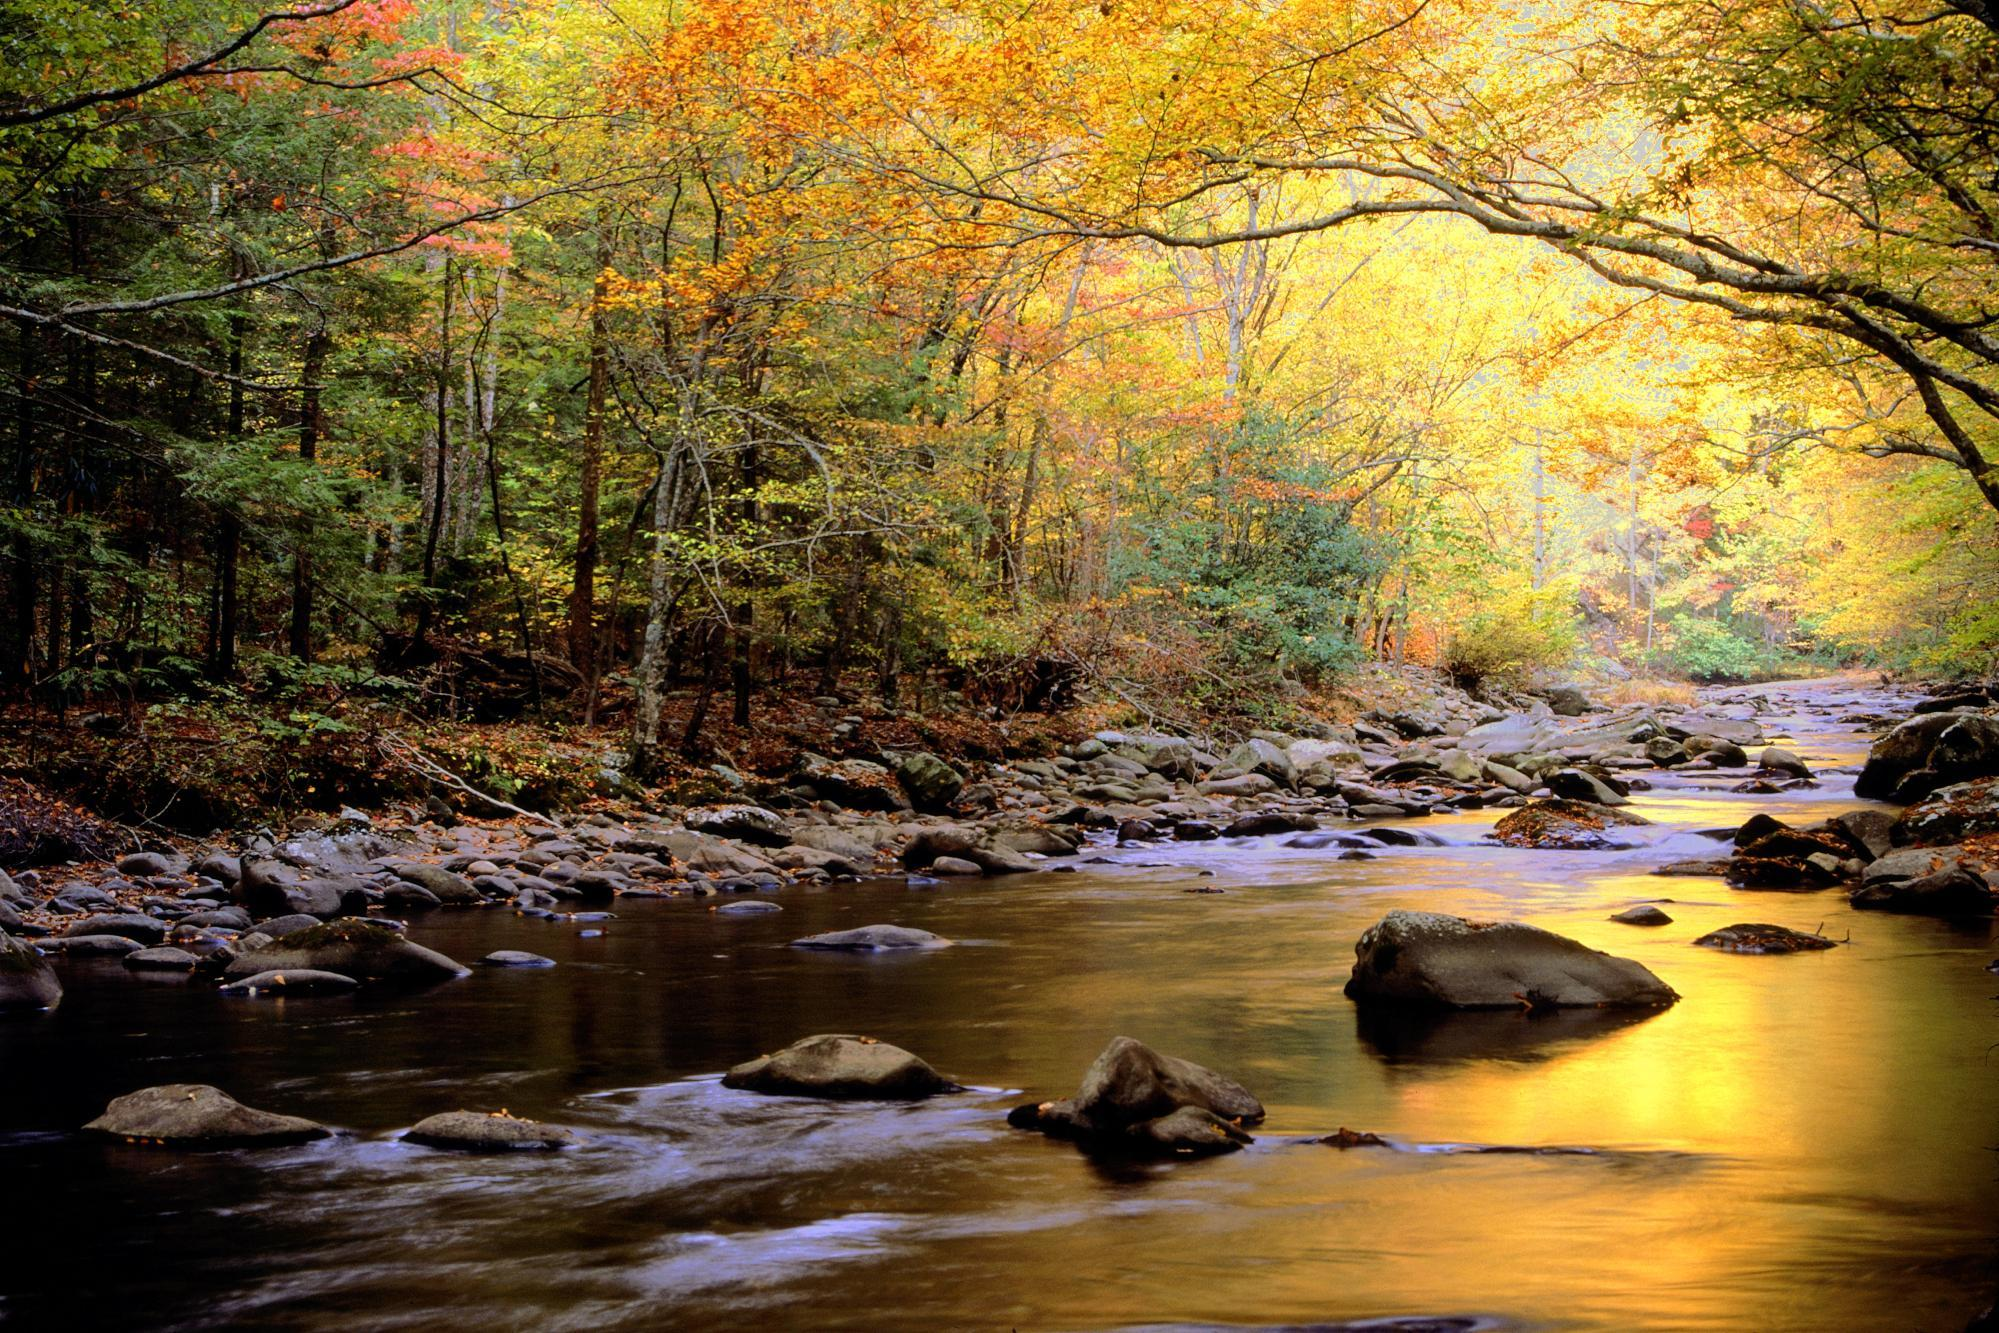 3648x2736px #916991 Great Smoky Mountains National Park (4478.58 ...